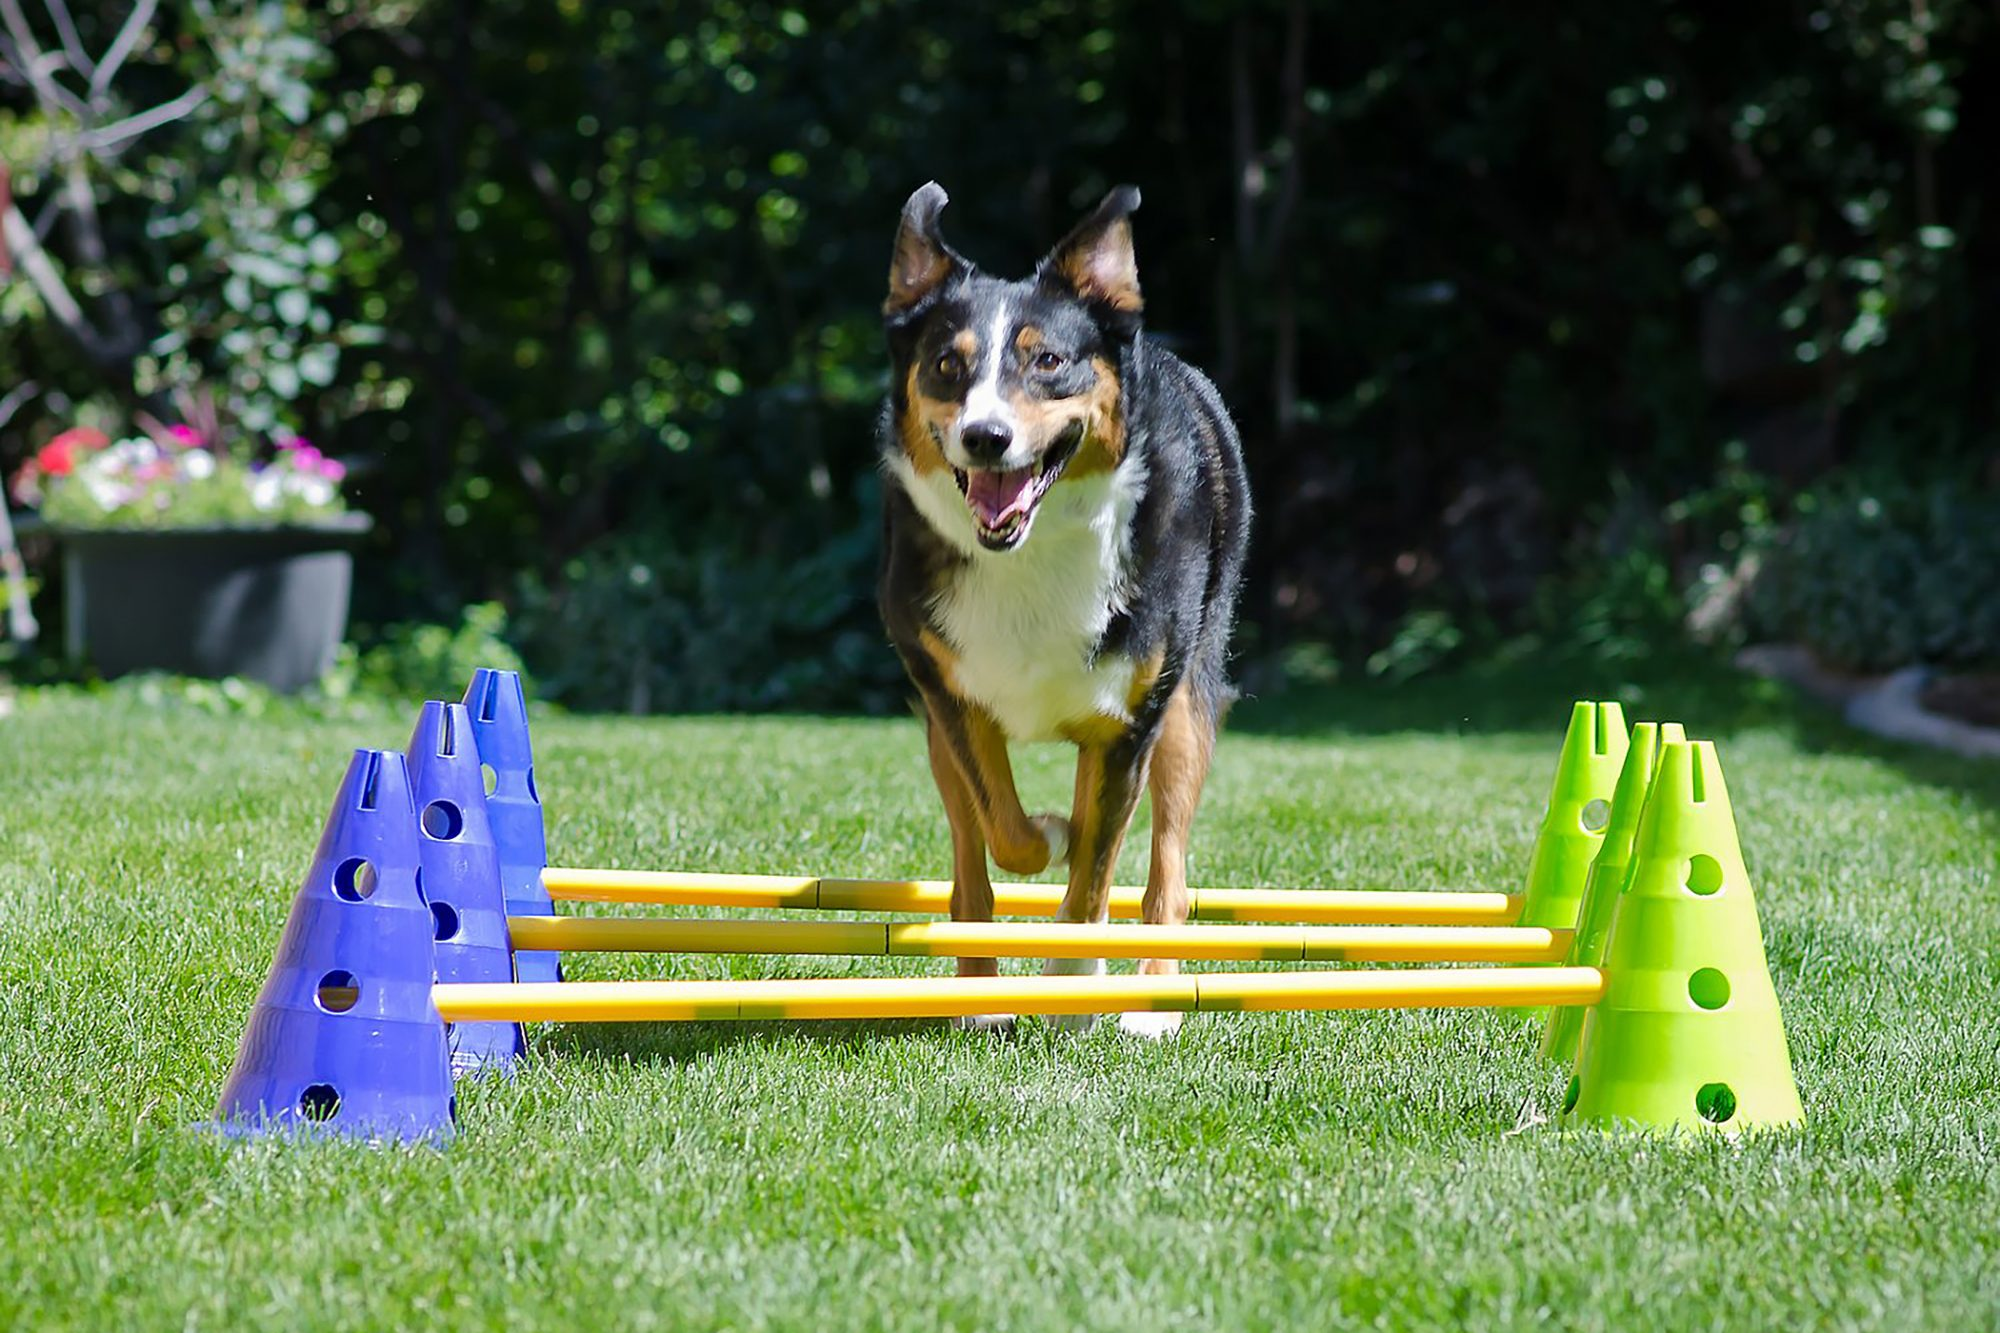 Dog jumping over agility equipment